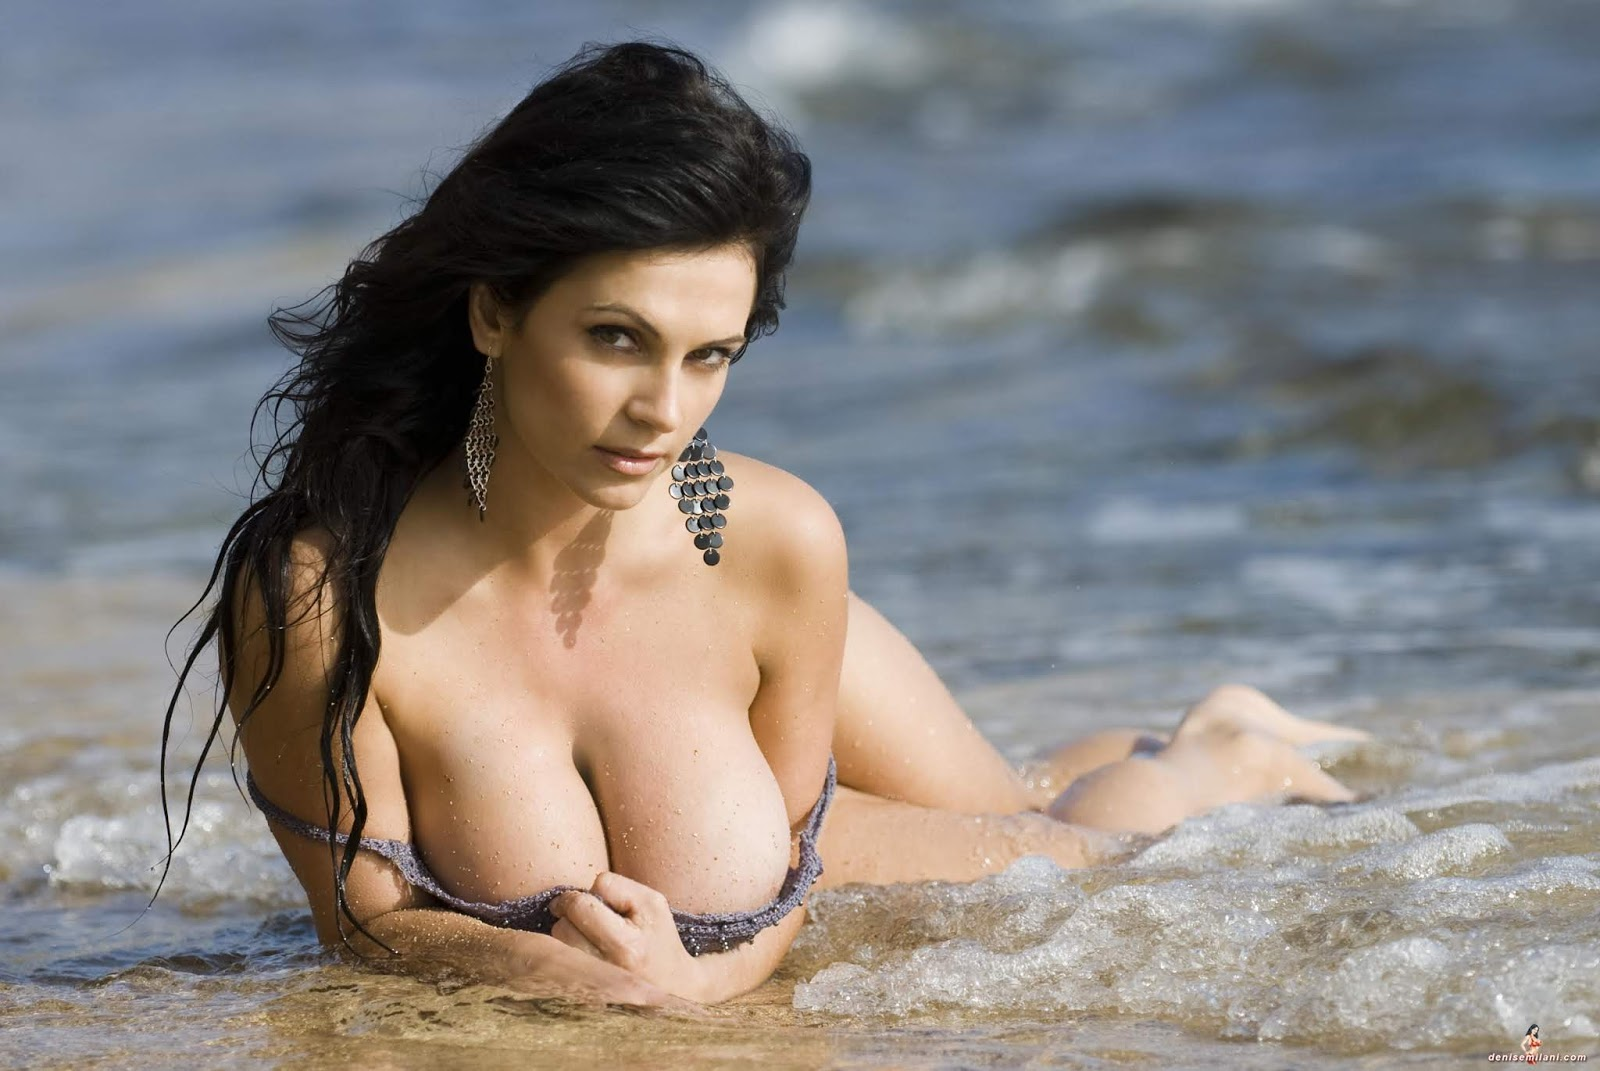 Denise milani at the beach nude, nitemare sex gifs